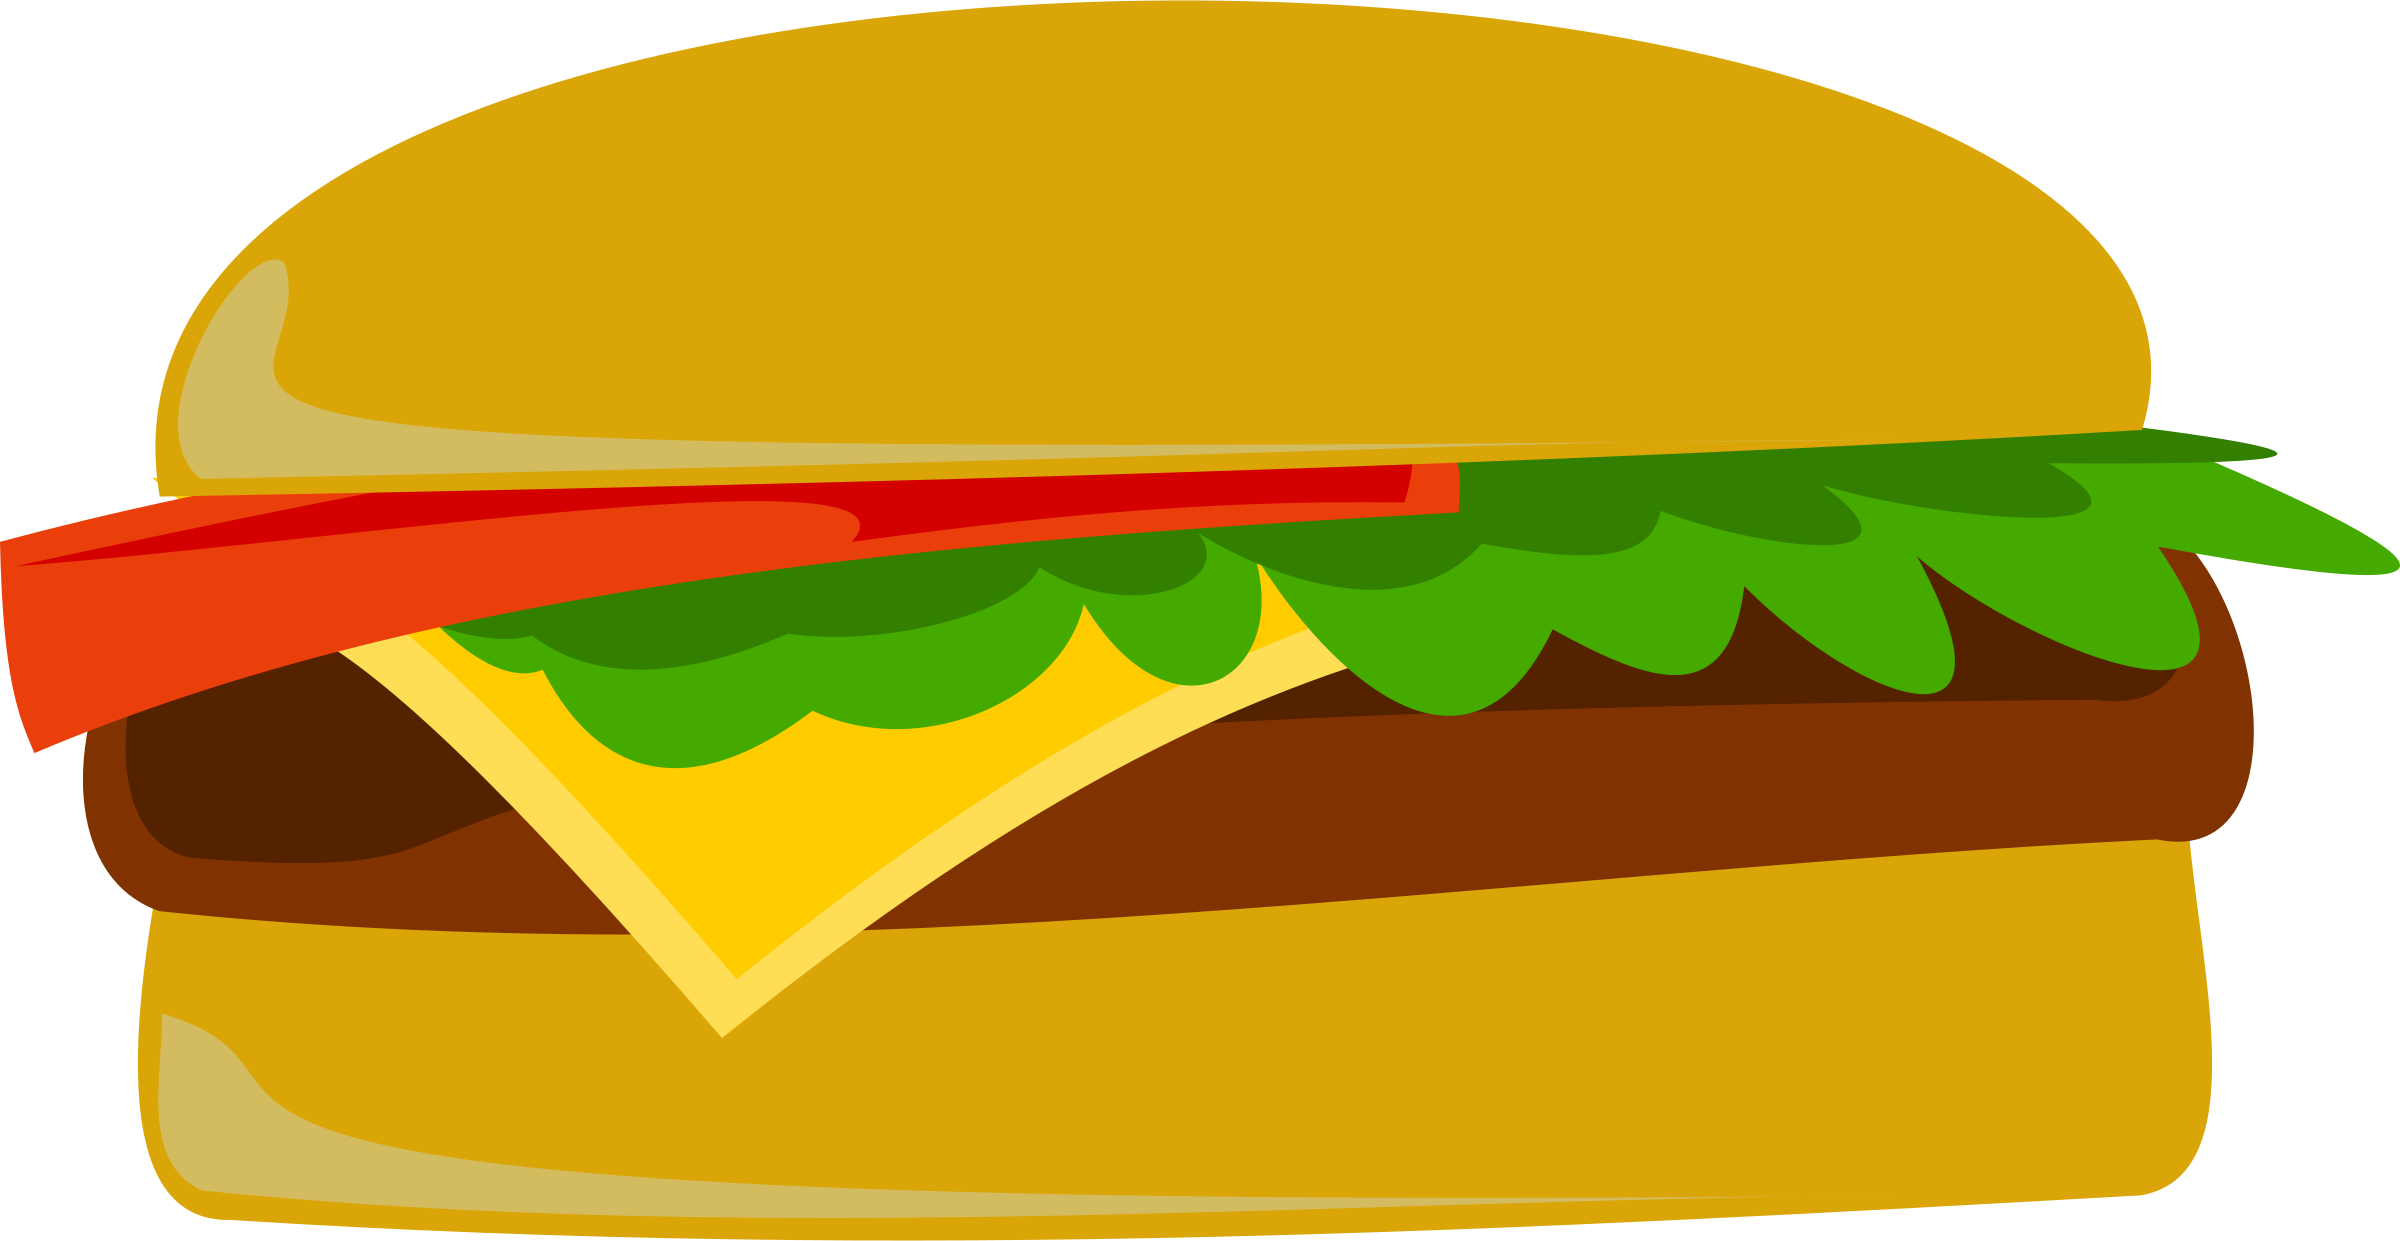 hotdog and hamburger clipart - PNG Hamburgers Hot Dogs